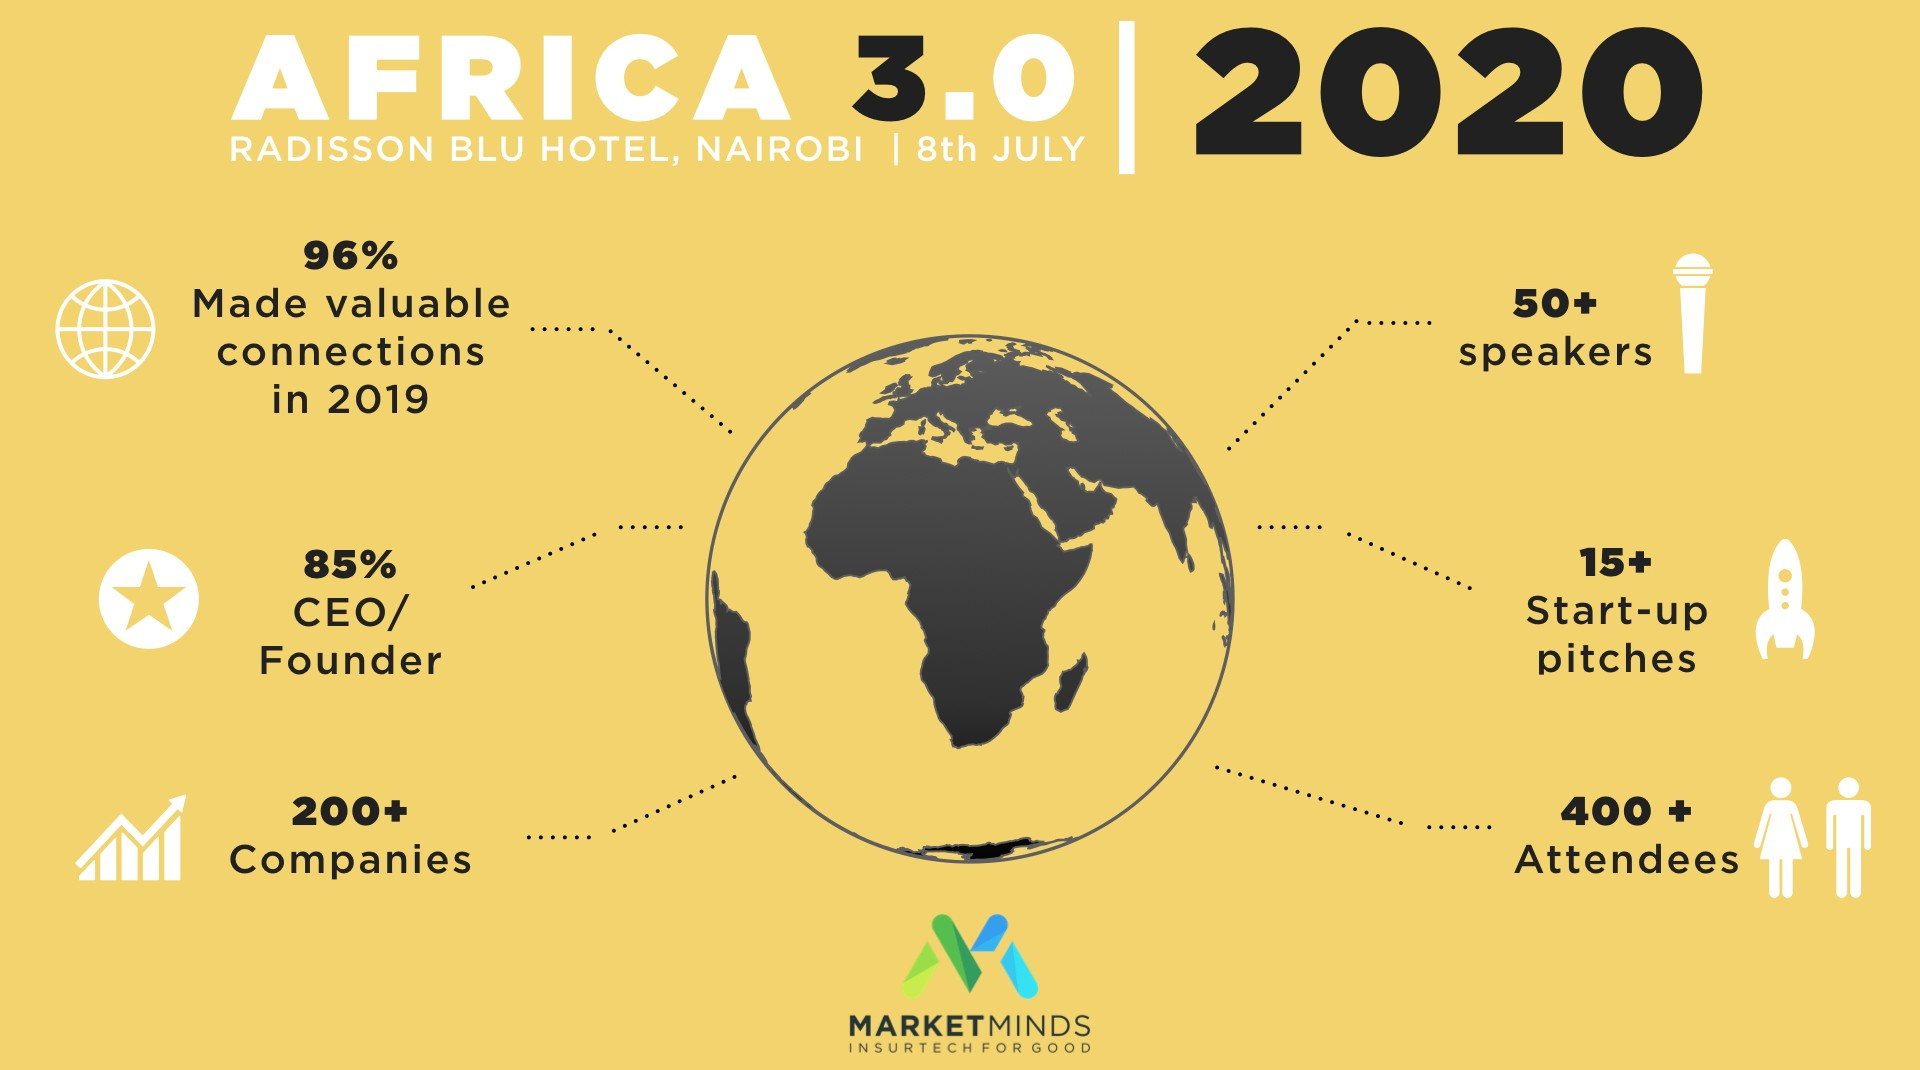 Africa 3.0 Conference